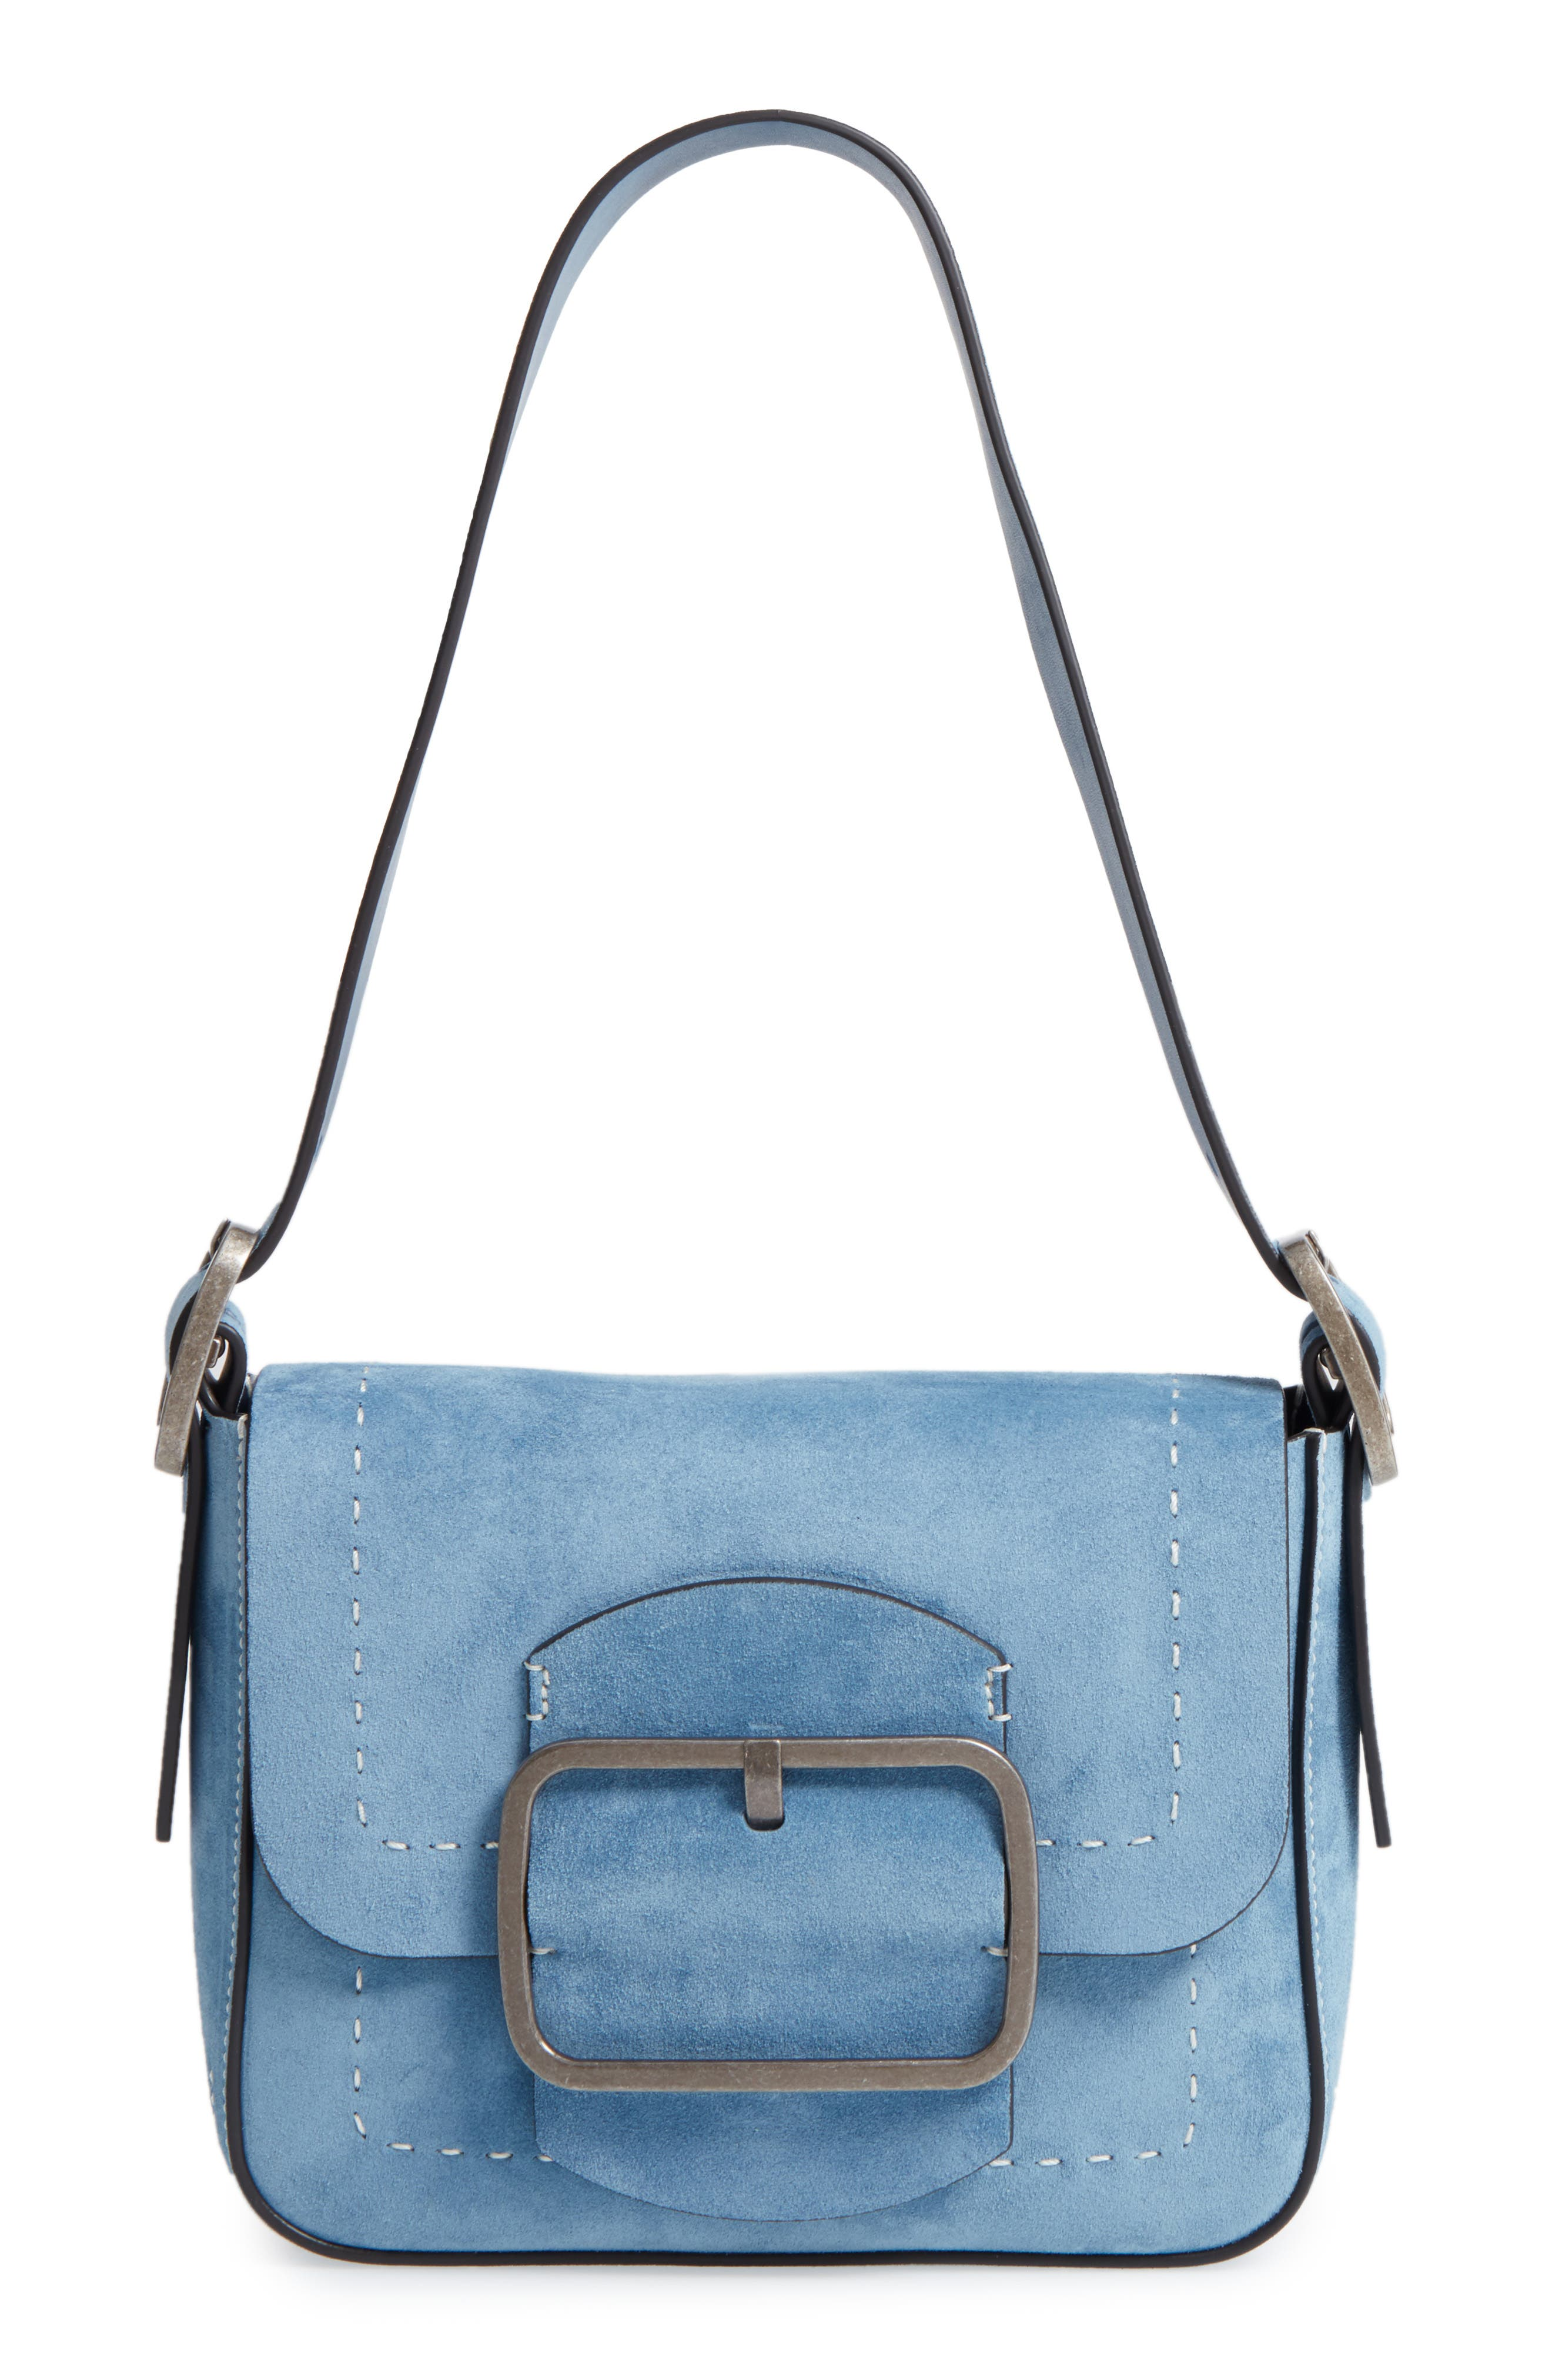 Alternate Image 1 Selected - Tory Burch Small Sawyer Suede Shoulder Bag